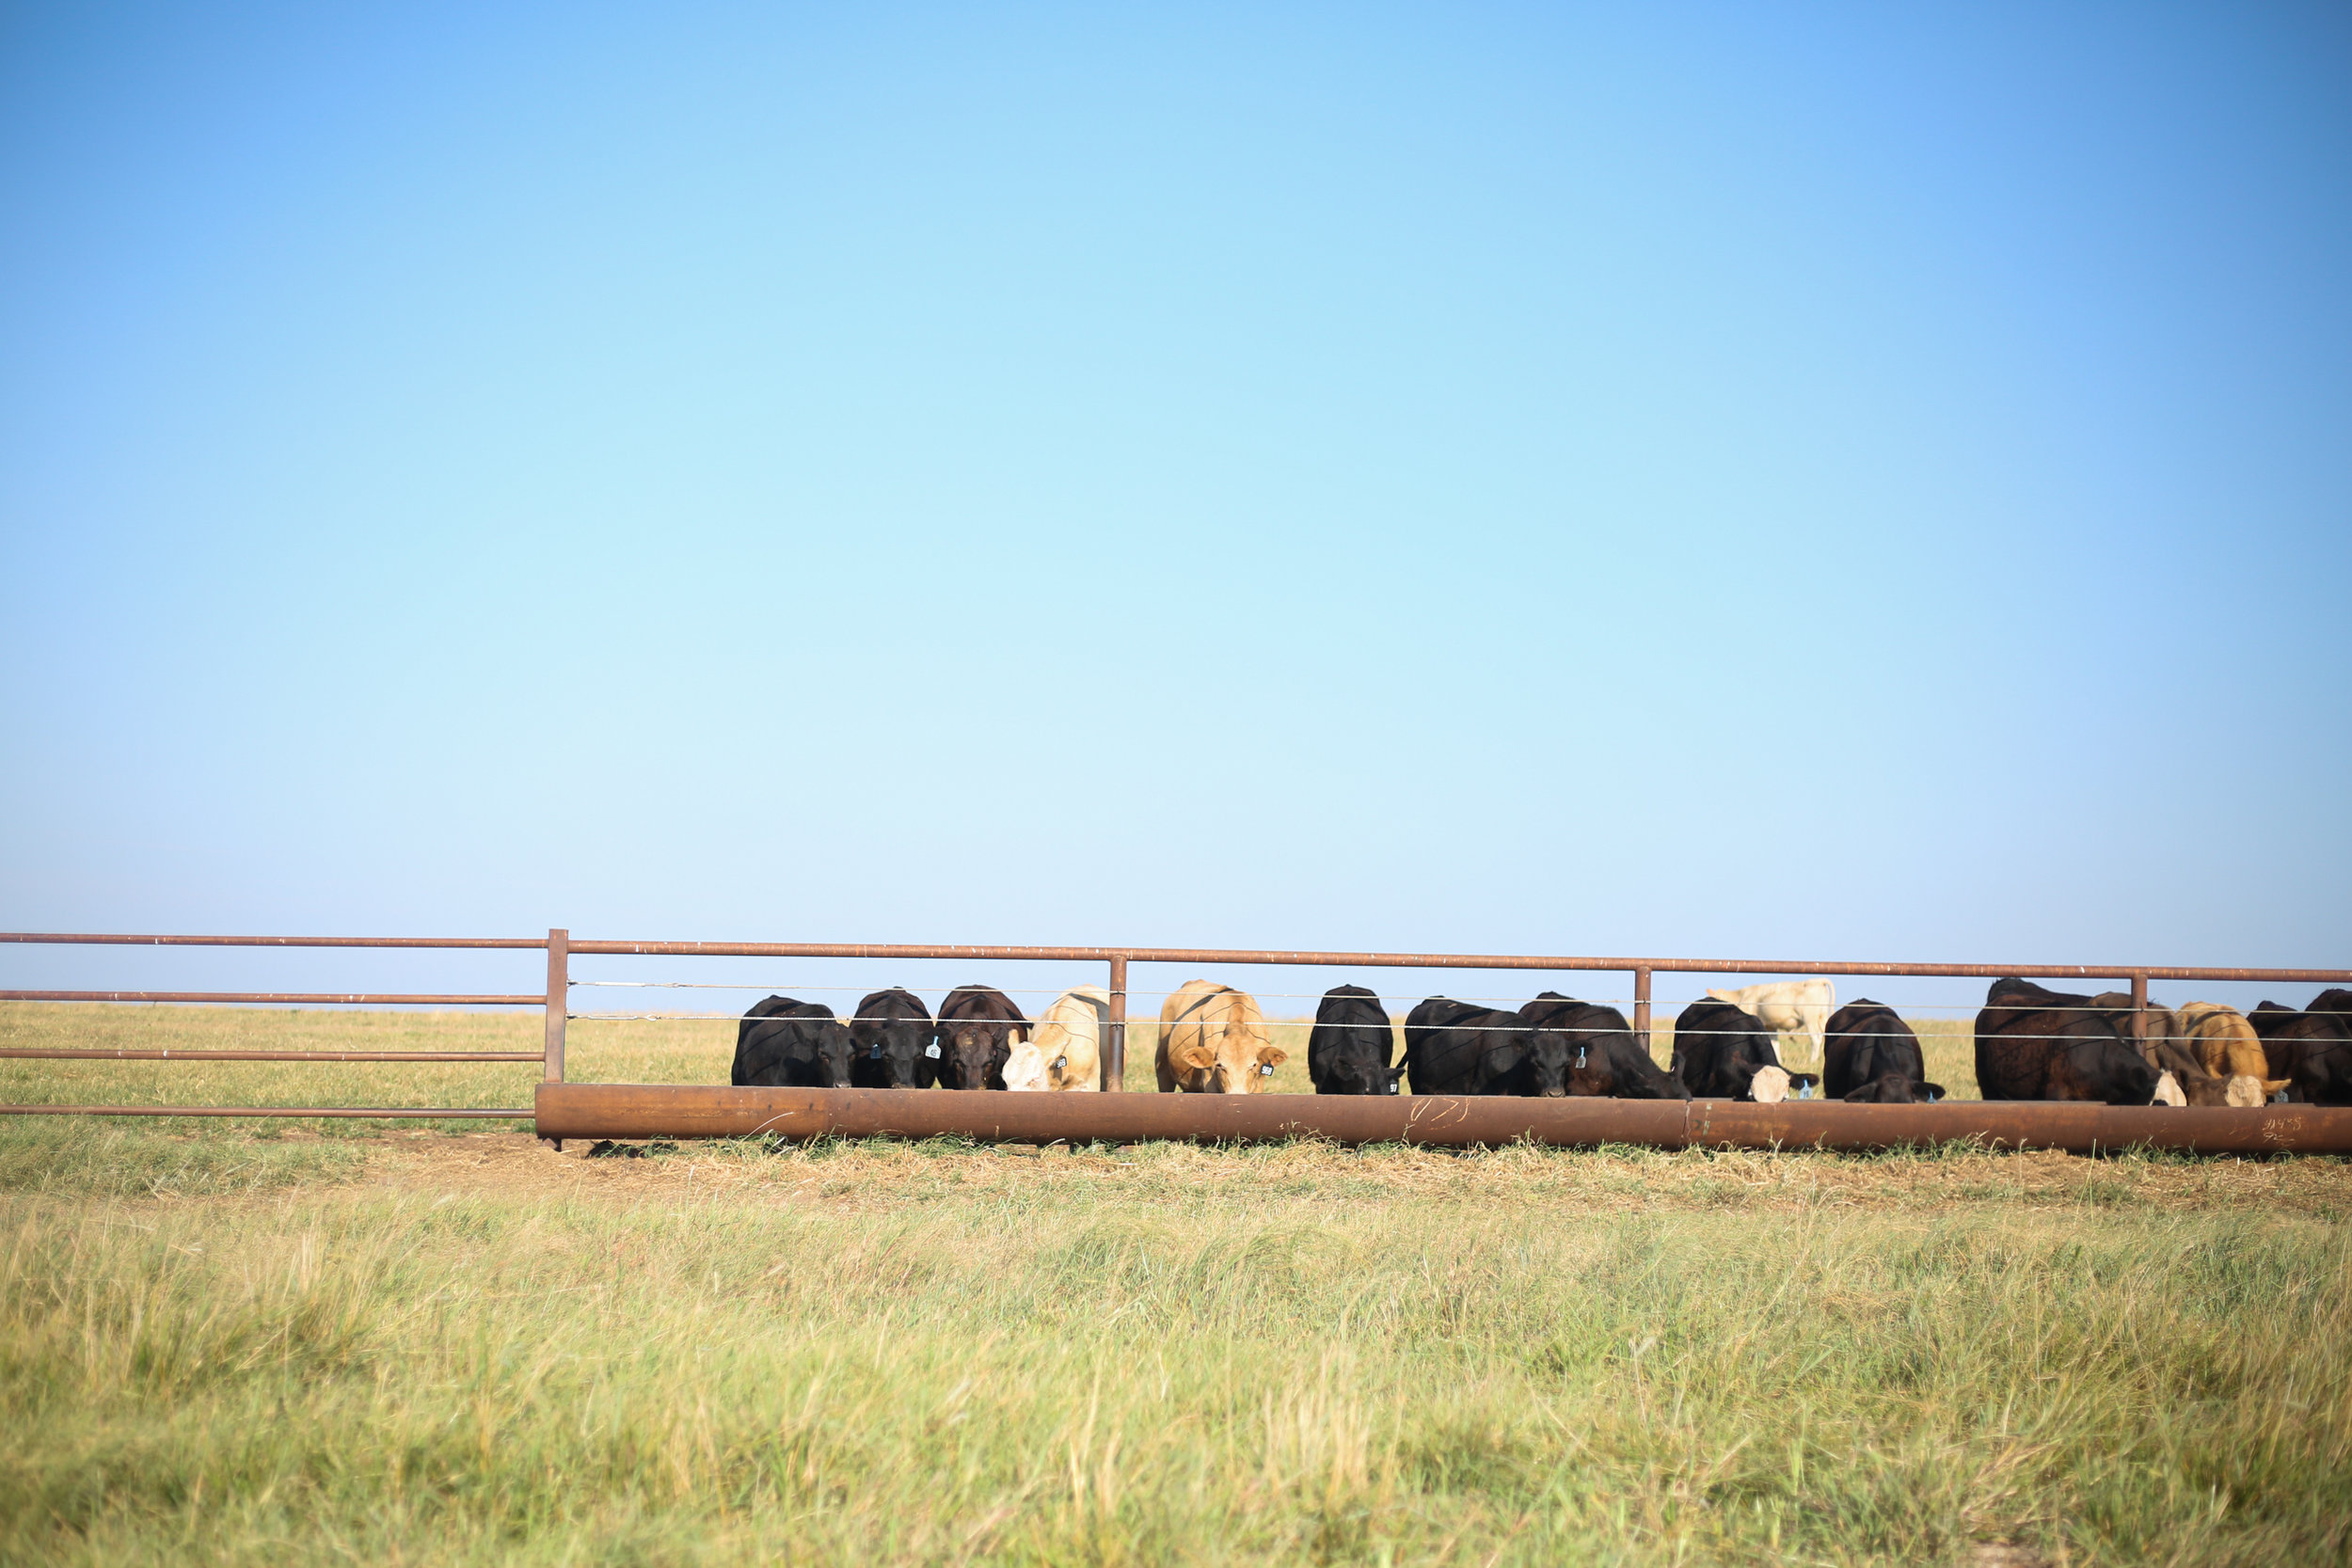 Cattle feed in a pasture at Stierwalt Ranch in Burbank, Oklahoma.